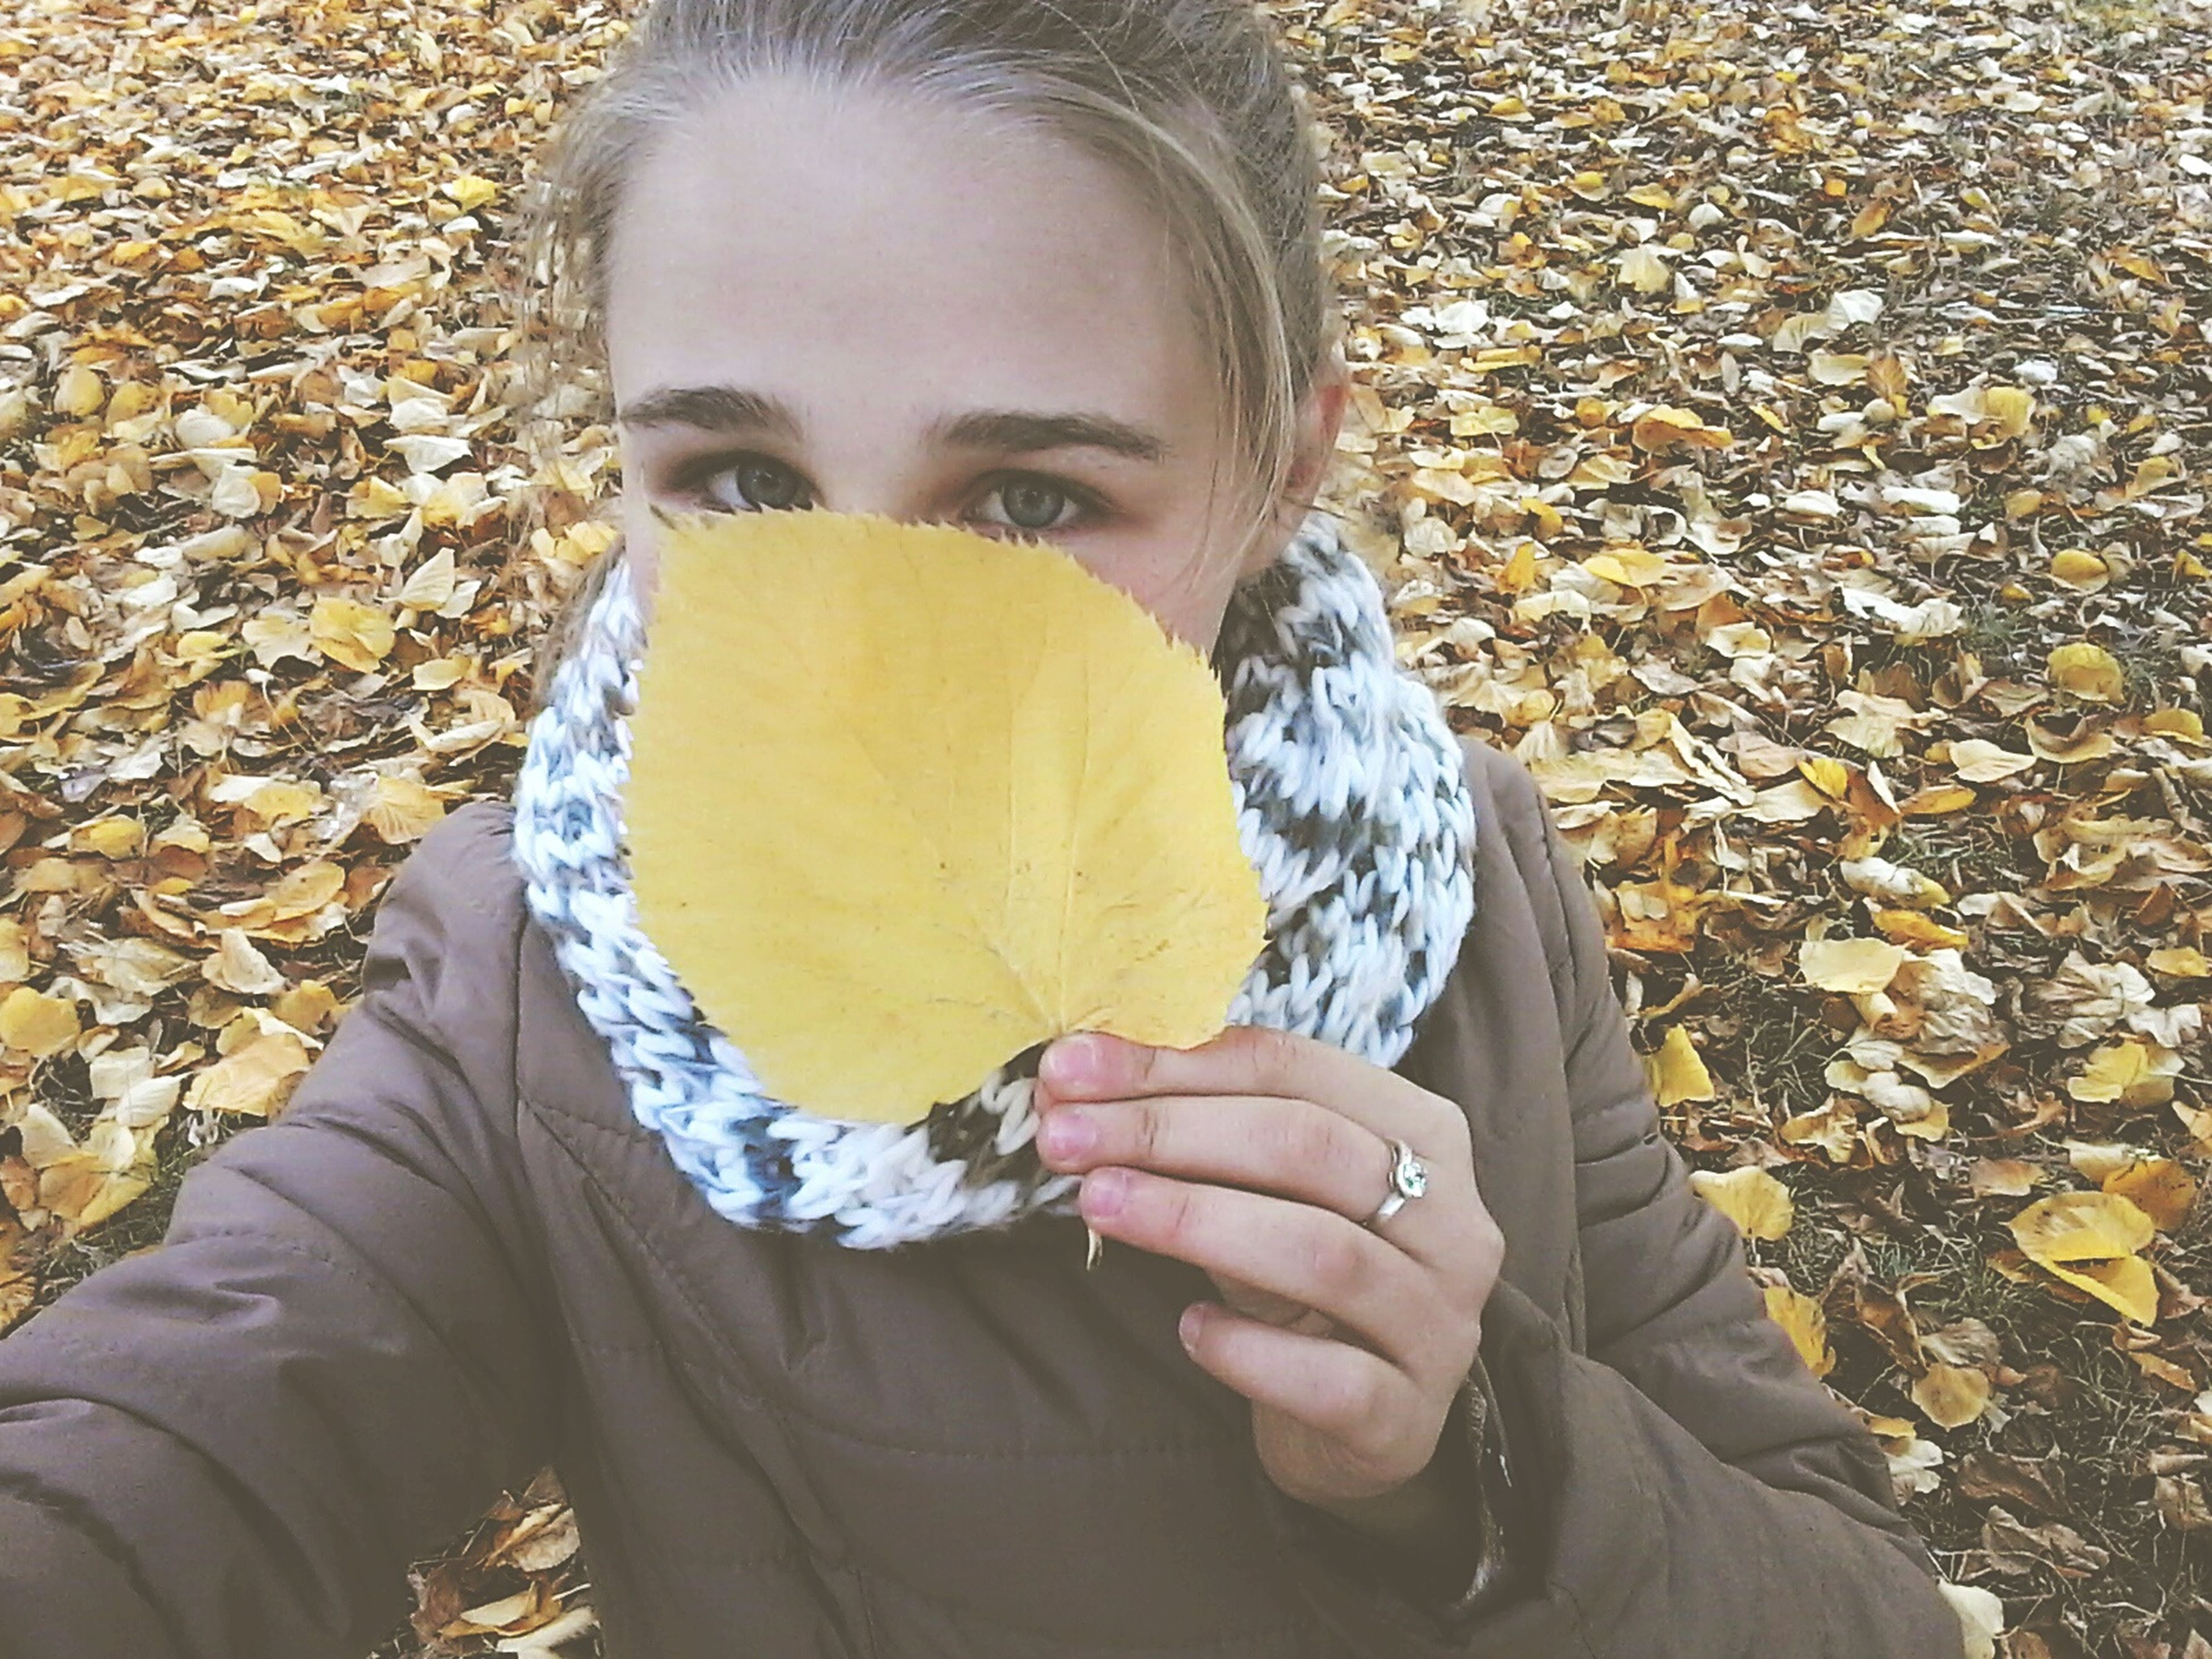 holding, season, autumn, freshness, casual clothing, outdoors, day, beauty in nature, tranquility